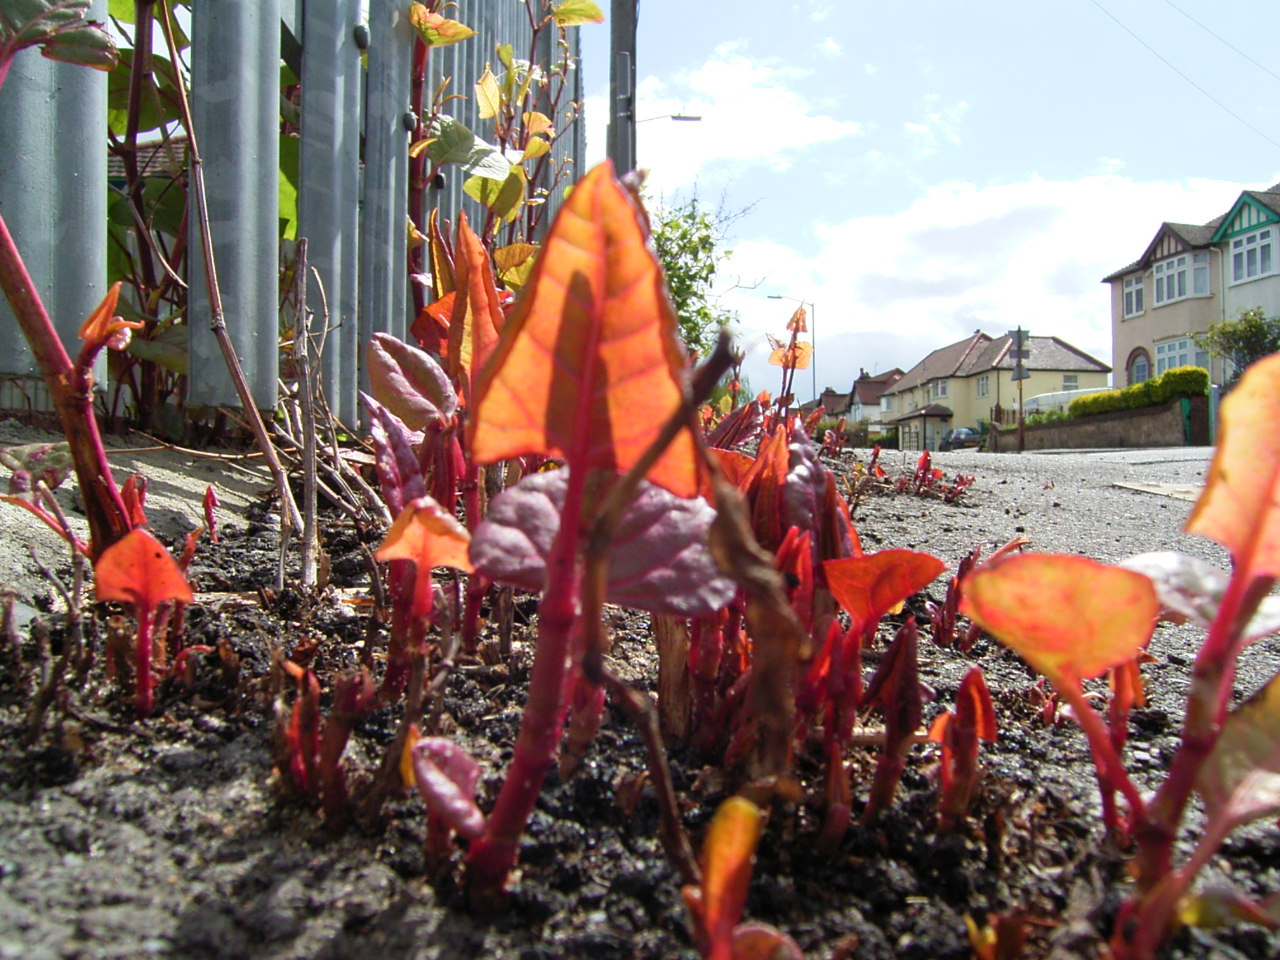 Japanese knotweed growing in High Wycombe_3784834880_o